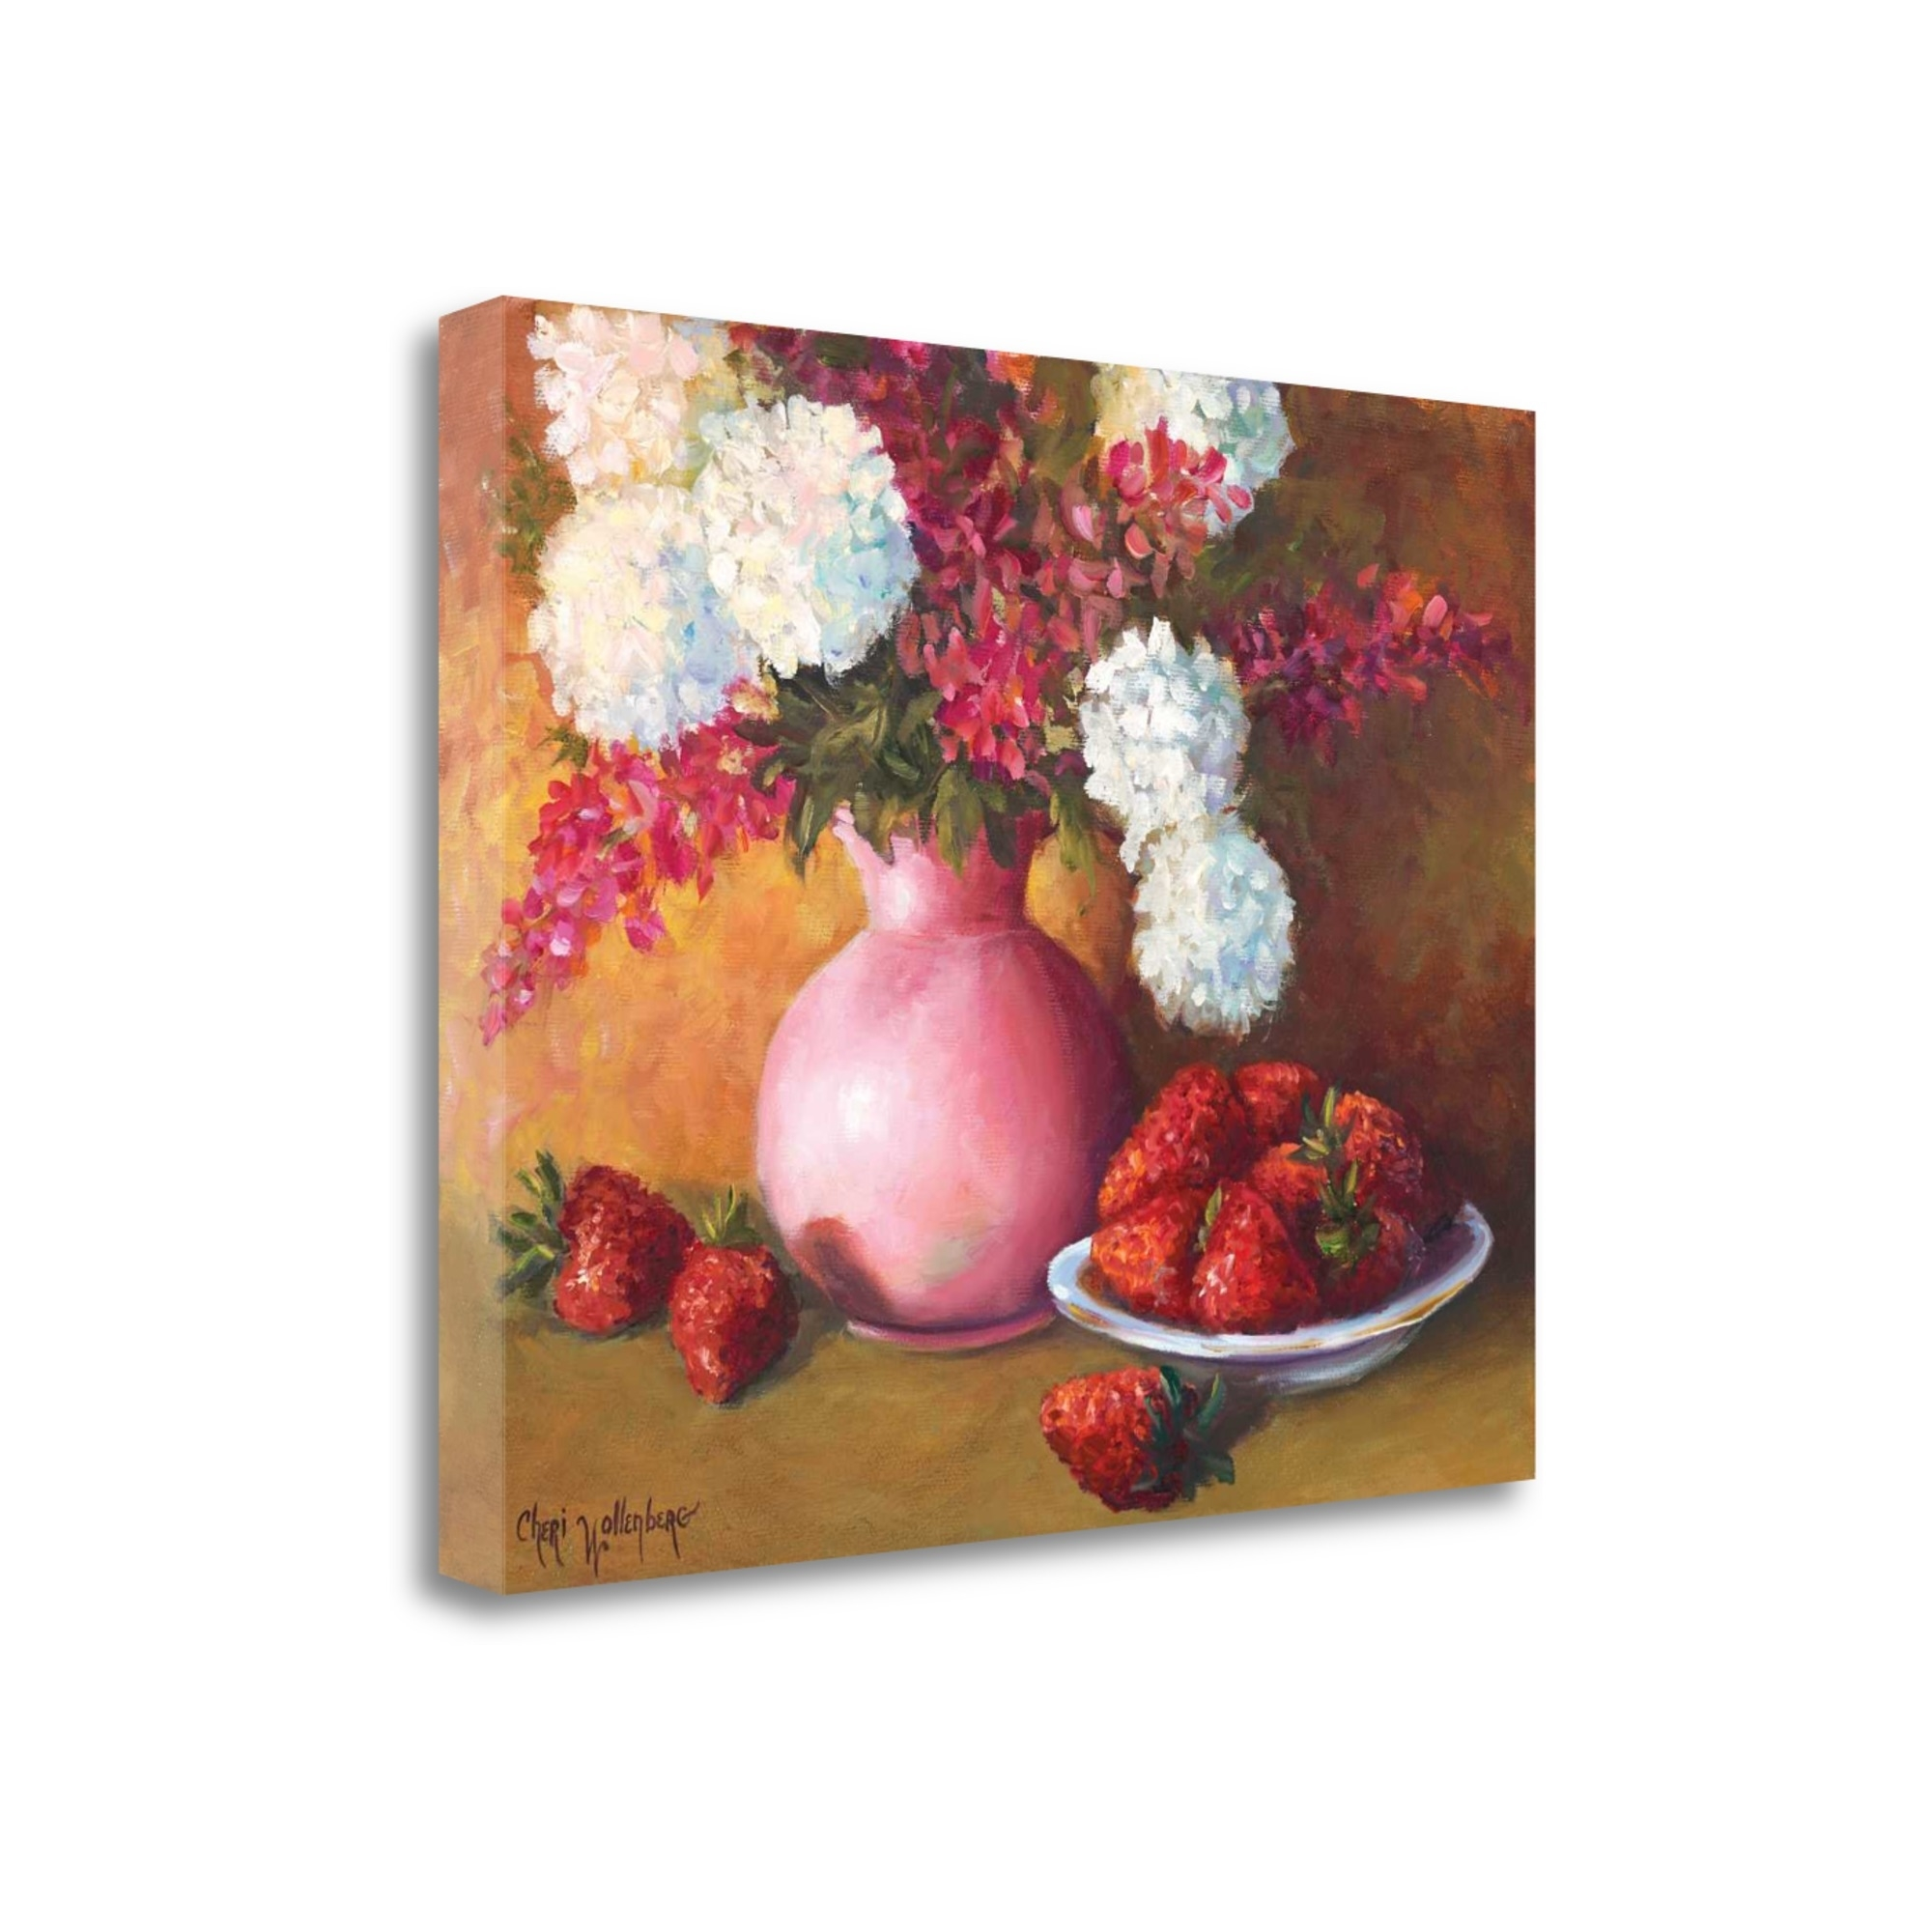 "Pink Vase And Strawberries By Cheri Wollenberg, 24"" x 19\"" Fine Art Giclee Print on Gallery Wrap Canvas, Ready to Hang"